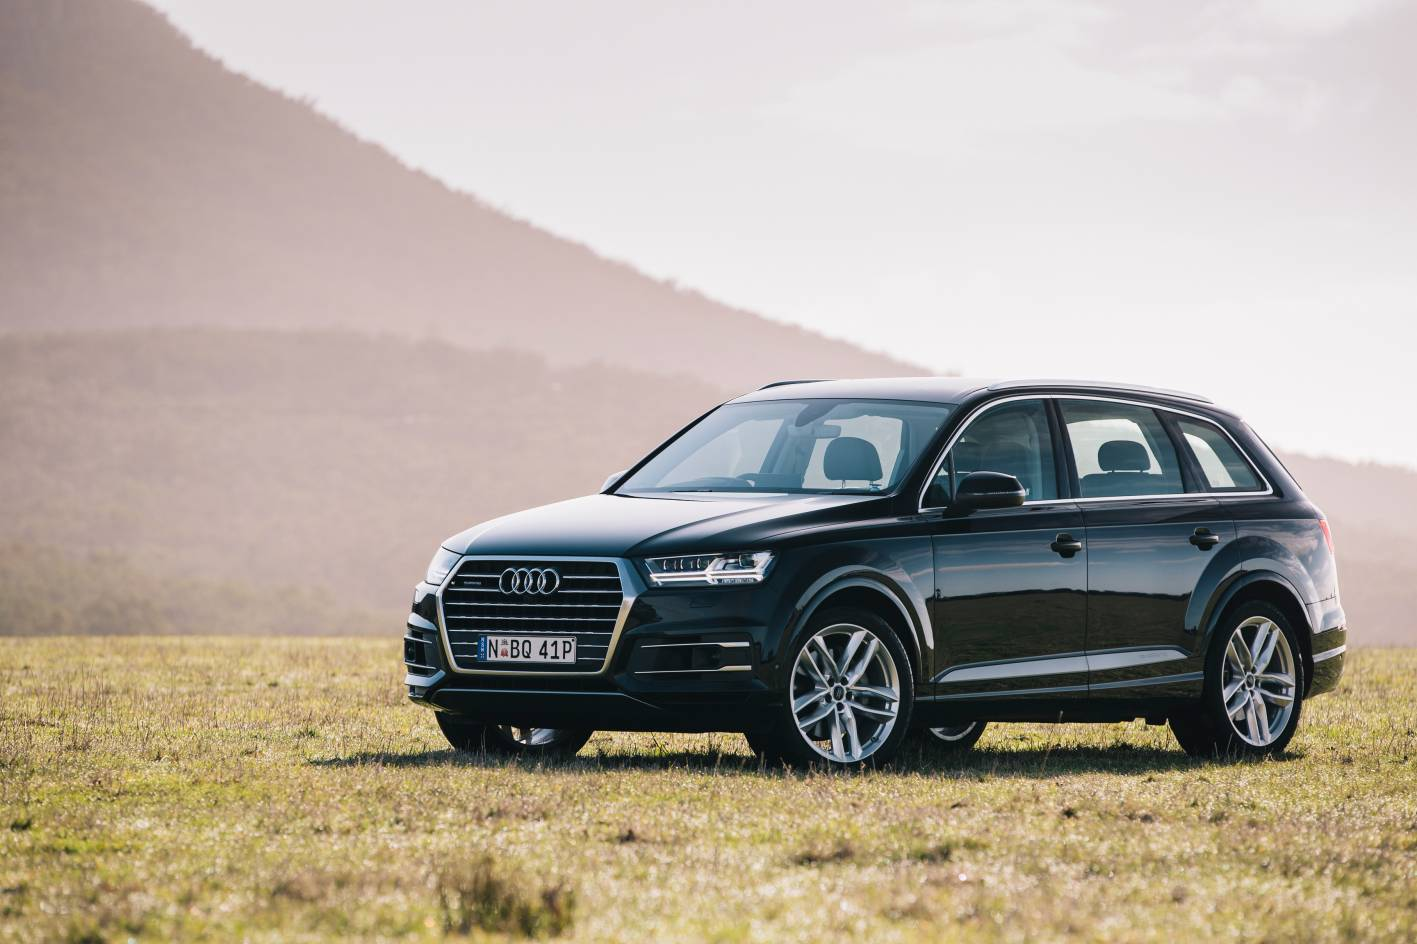 2016 audi q7 arrives in australia priced from 103 900. Black Bedroom Furniture Sets. Home Design Ideas